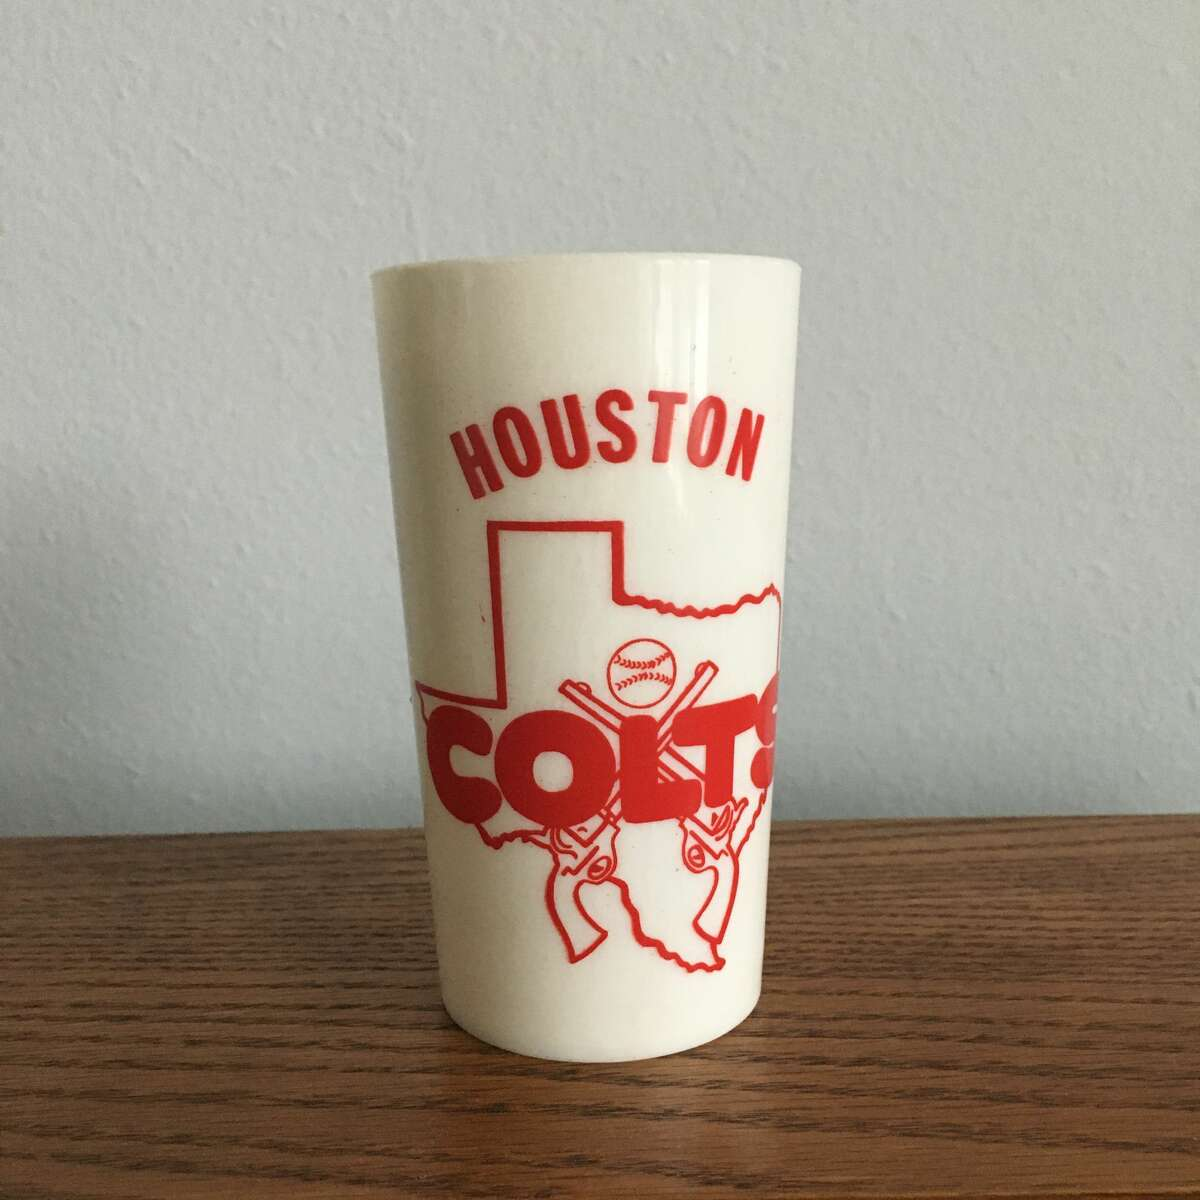 Joshua Ojeda's most expensive snag is this four-inch Houston Colts cup from a Pennsylvania seller.